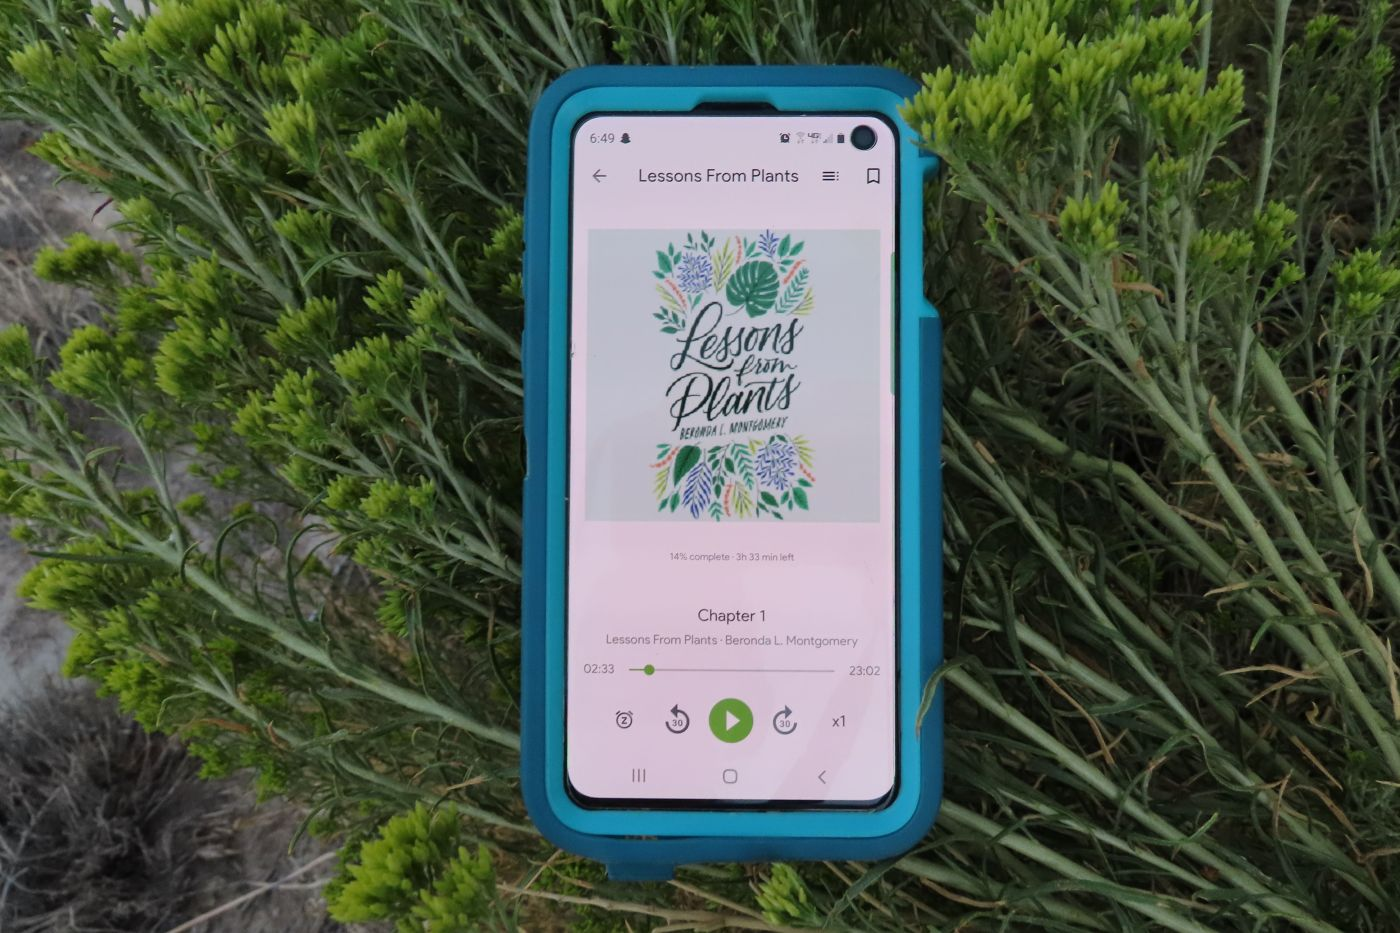 Audiobook of Lessons from plants playing on a blue smartphone